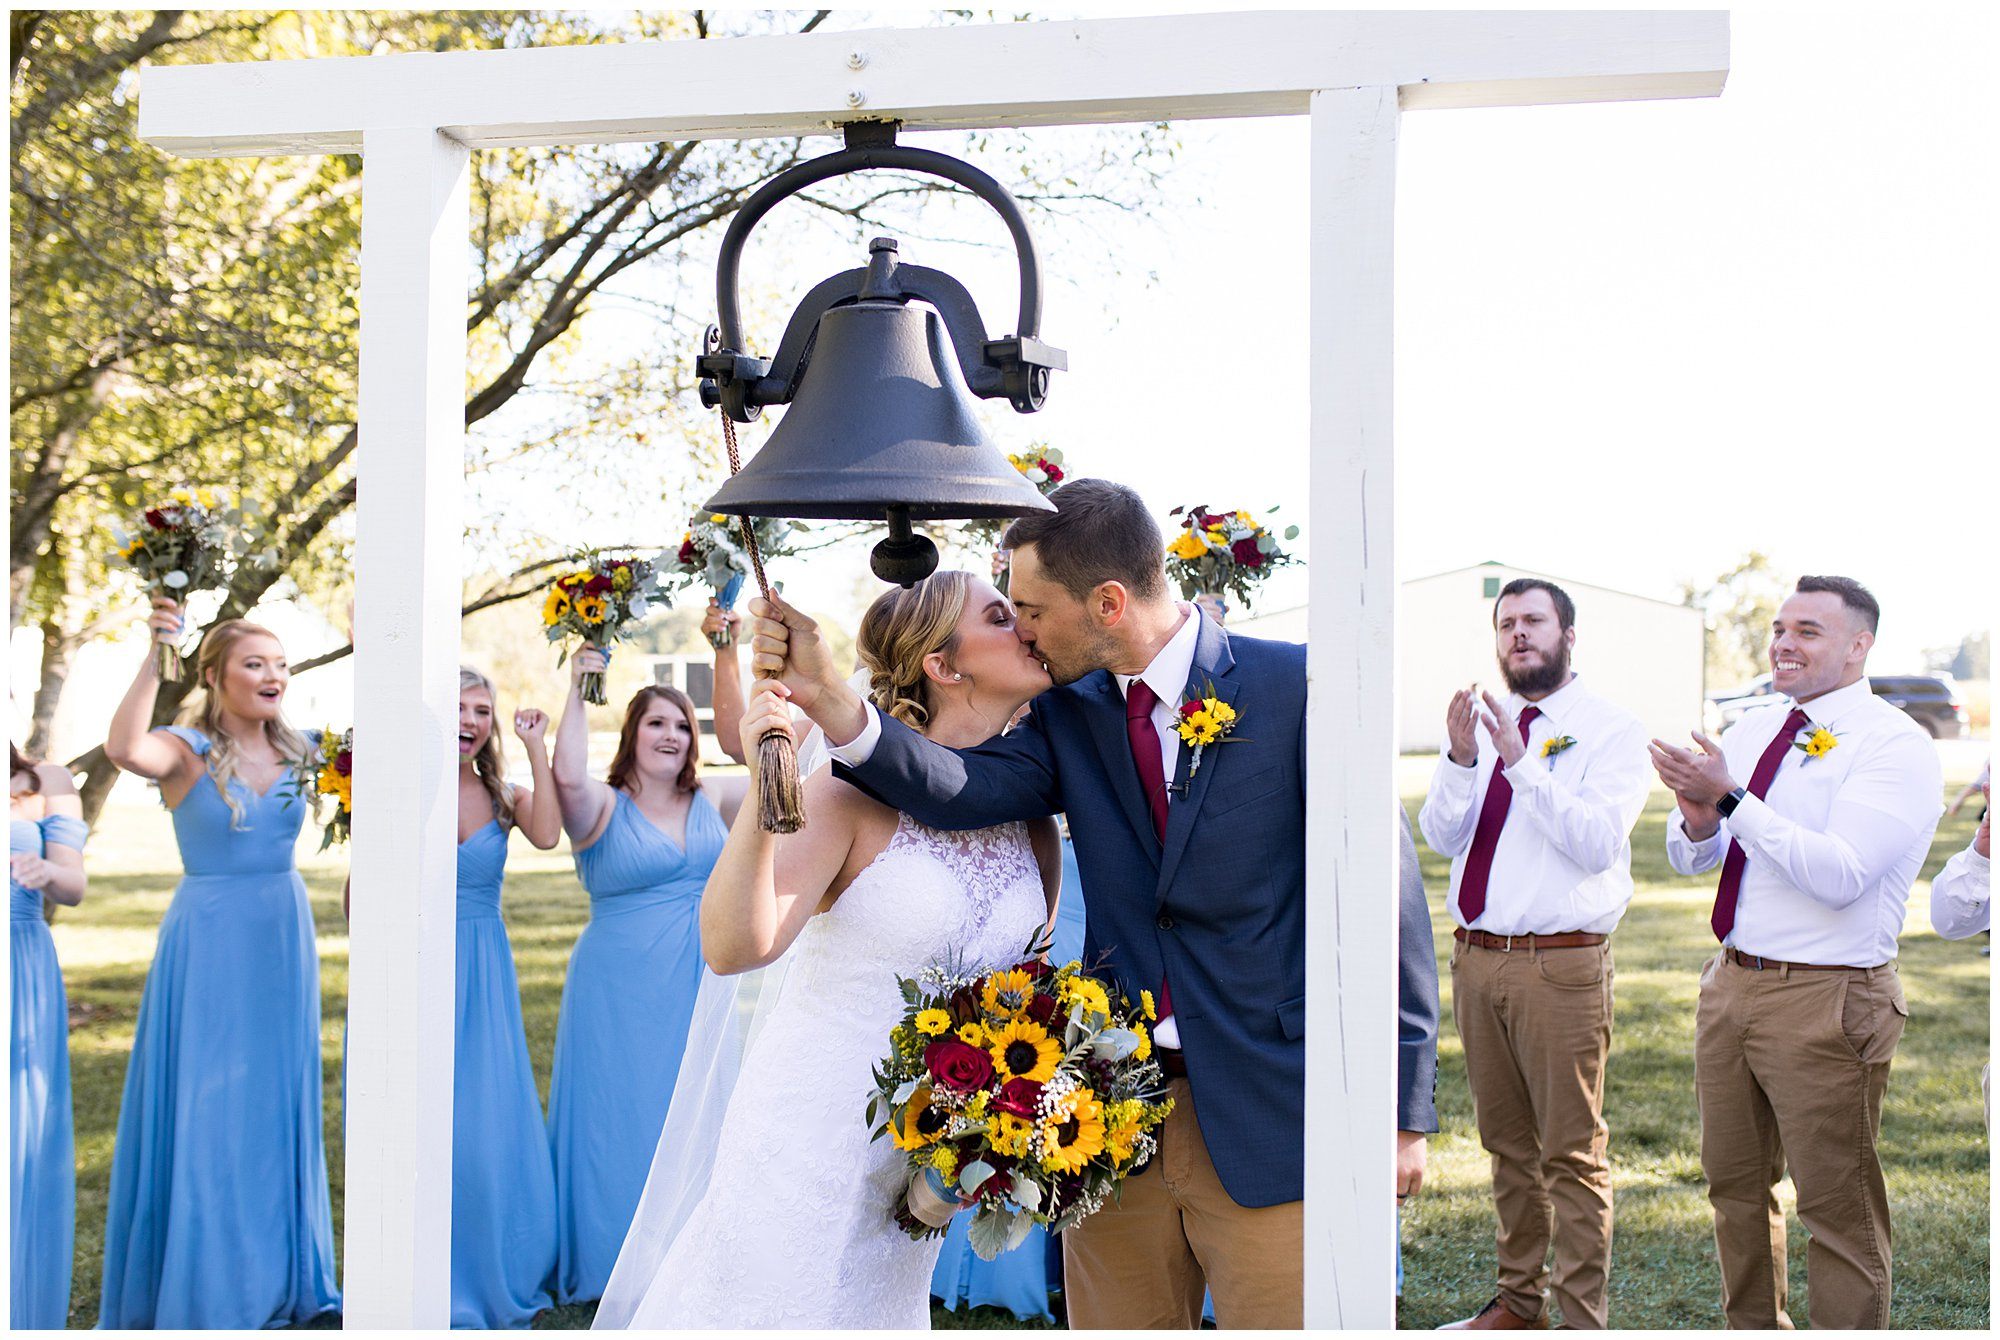 bride and groom kiss and ring the legacy bell at Kokomo's Legacy Barn wedding venue